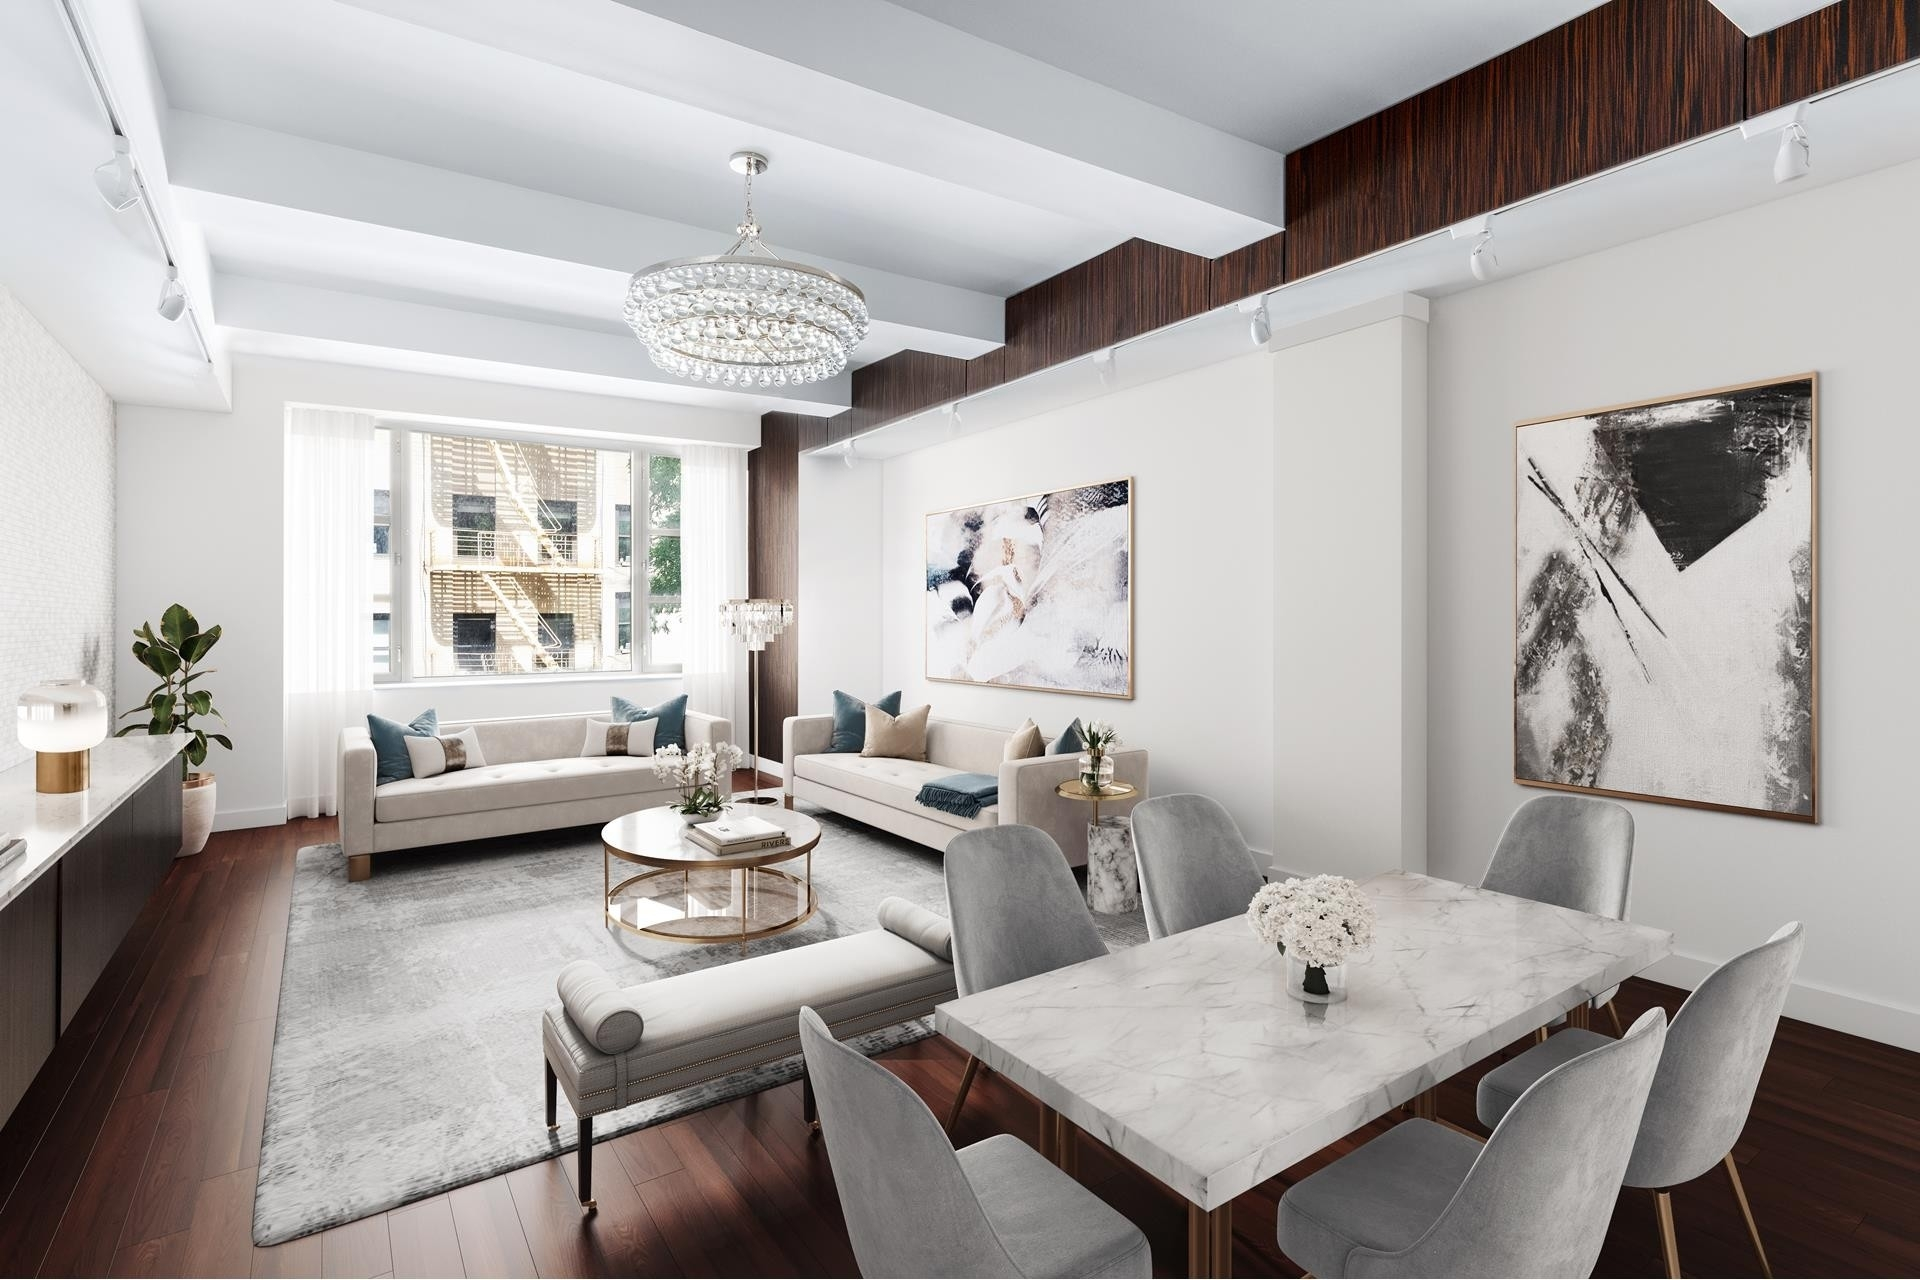 3. Condominiums for Sale at Liberty Lofts, 43 West 64th St, 3D Lincoln Square, New York, NY 10023